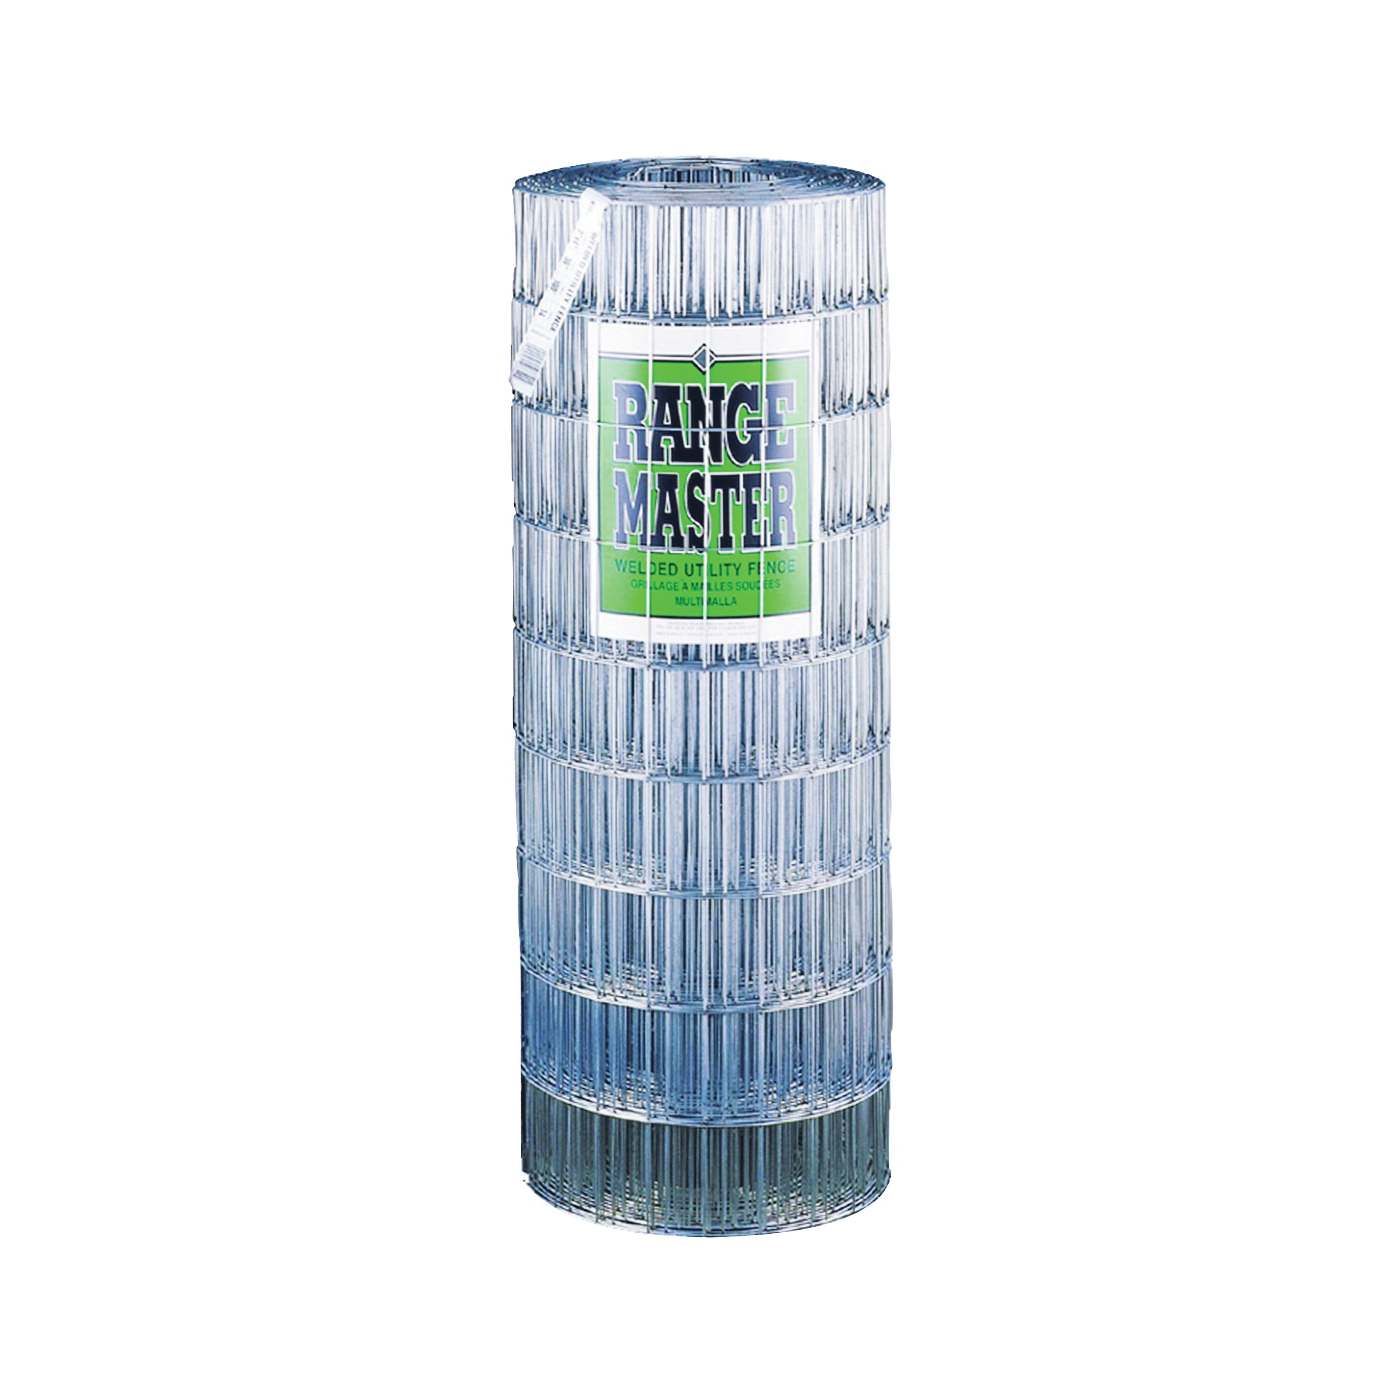 Picture of Jackson Wire 10 01 38 14 Welded Wire Fence, 100 ft L, 36 in H, 2 x 4 in Mesh, 12-1/2 Gauge, Galvanized